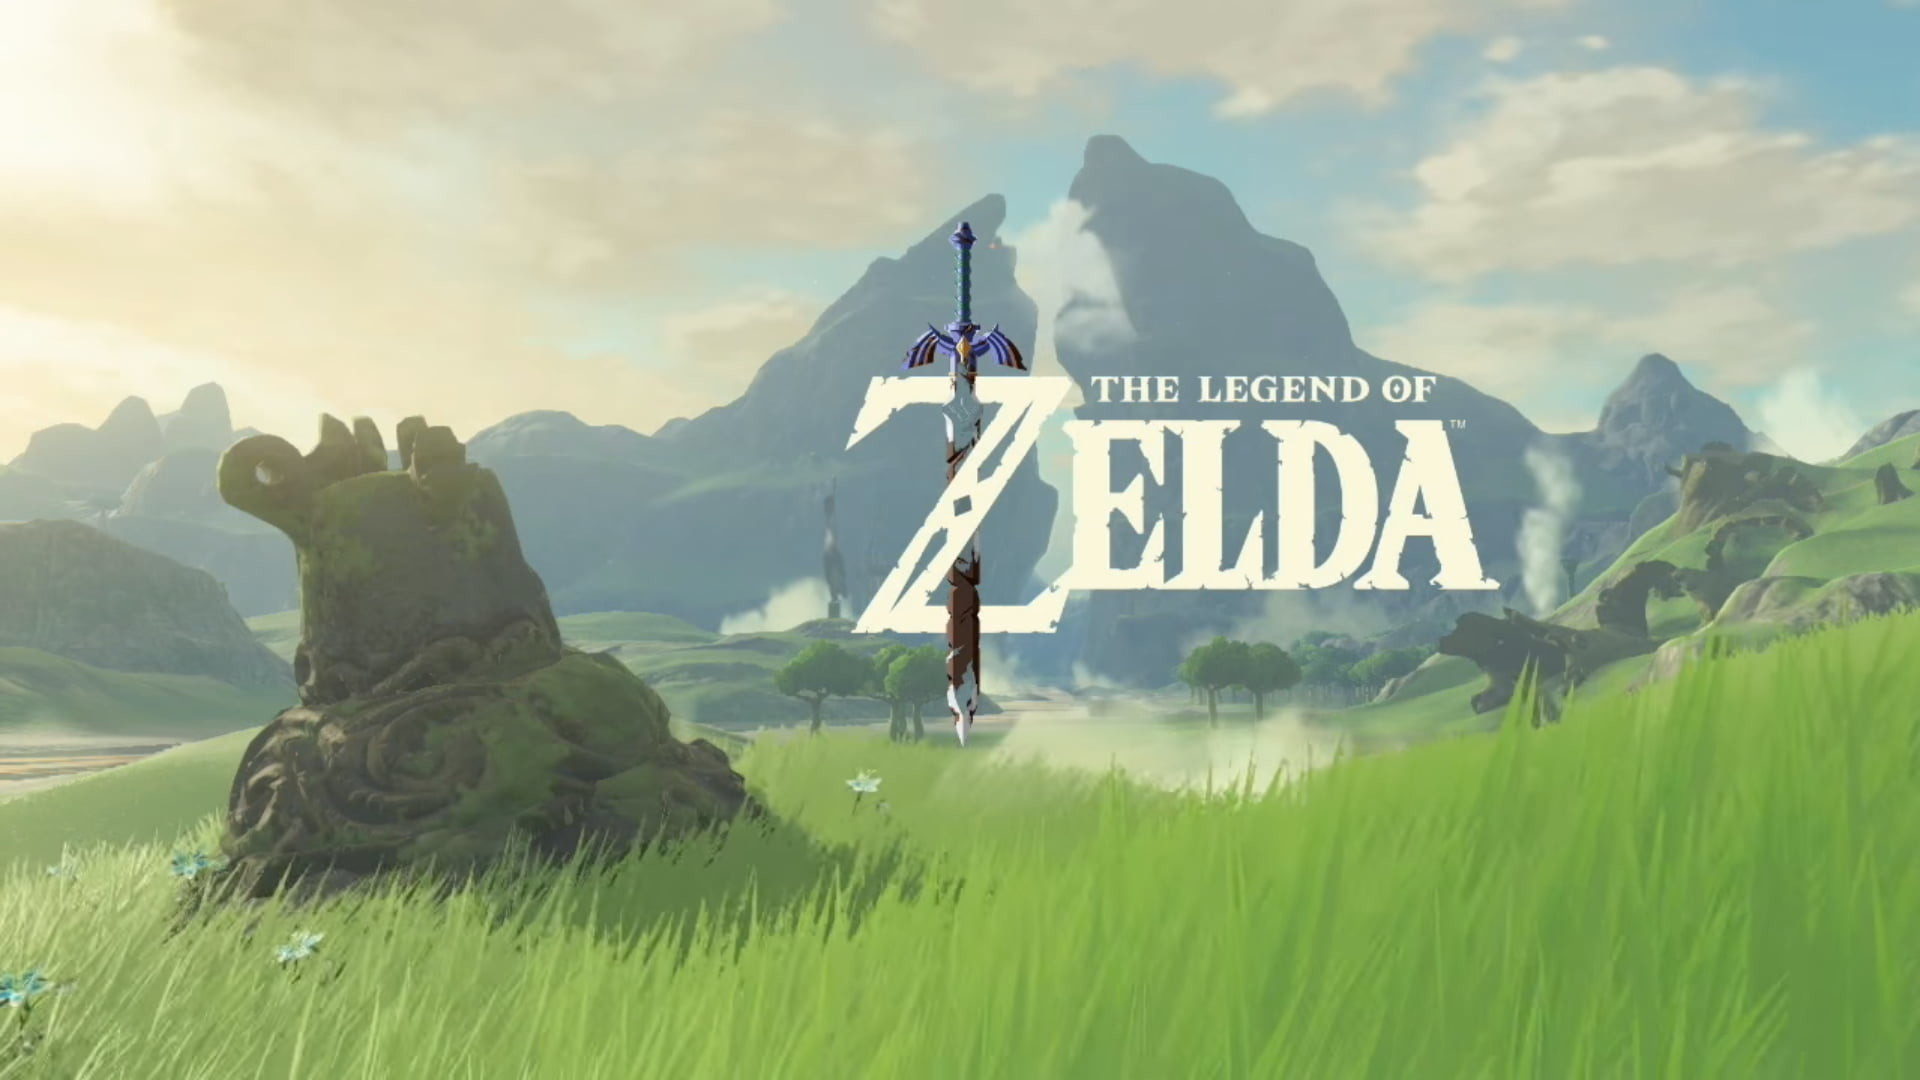 1920x1080 The Legend of Zelda poster, The Legend of Zelda, The Legend of Zelda: